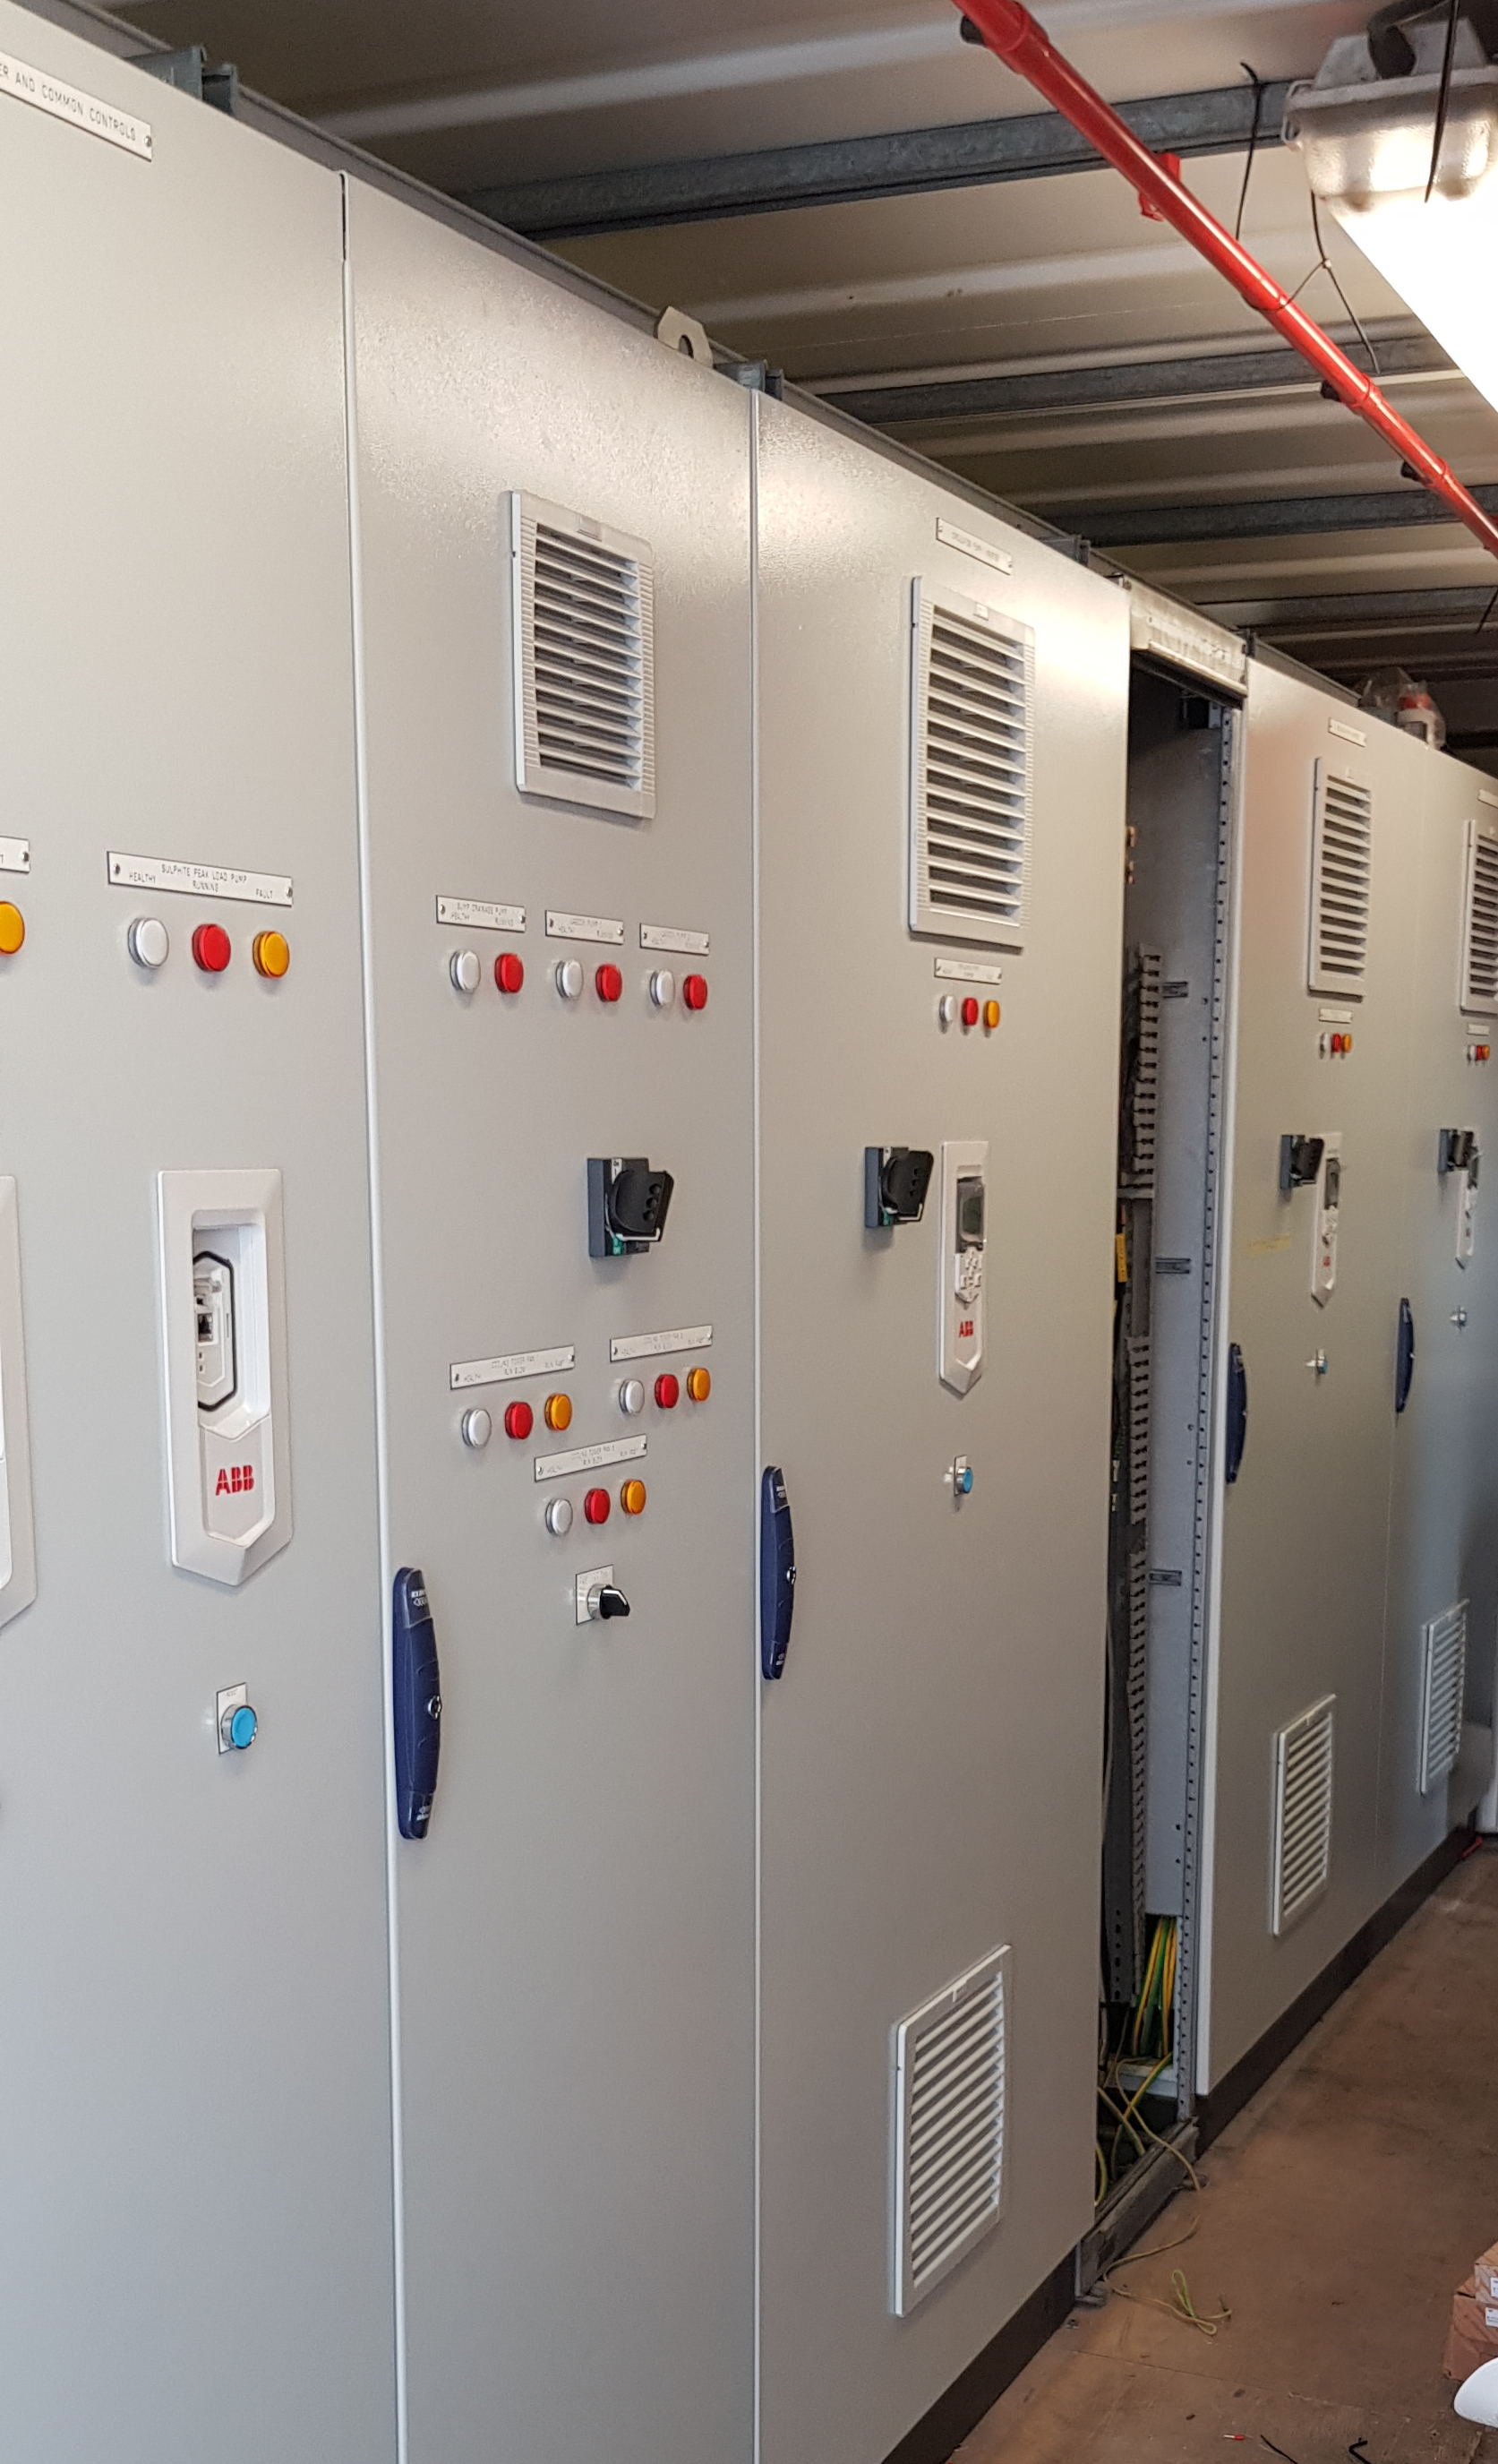 our uk company and team are widely experienced in all aspects of commercial  and industrial electrical installation from plant machinery to general  power to